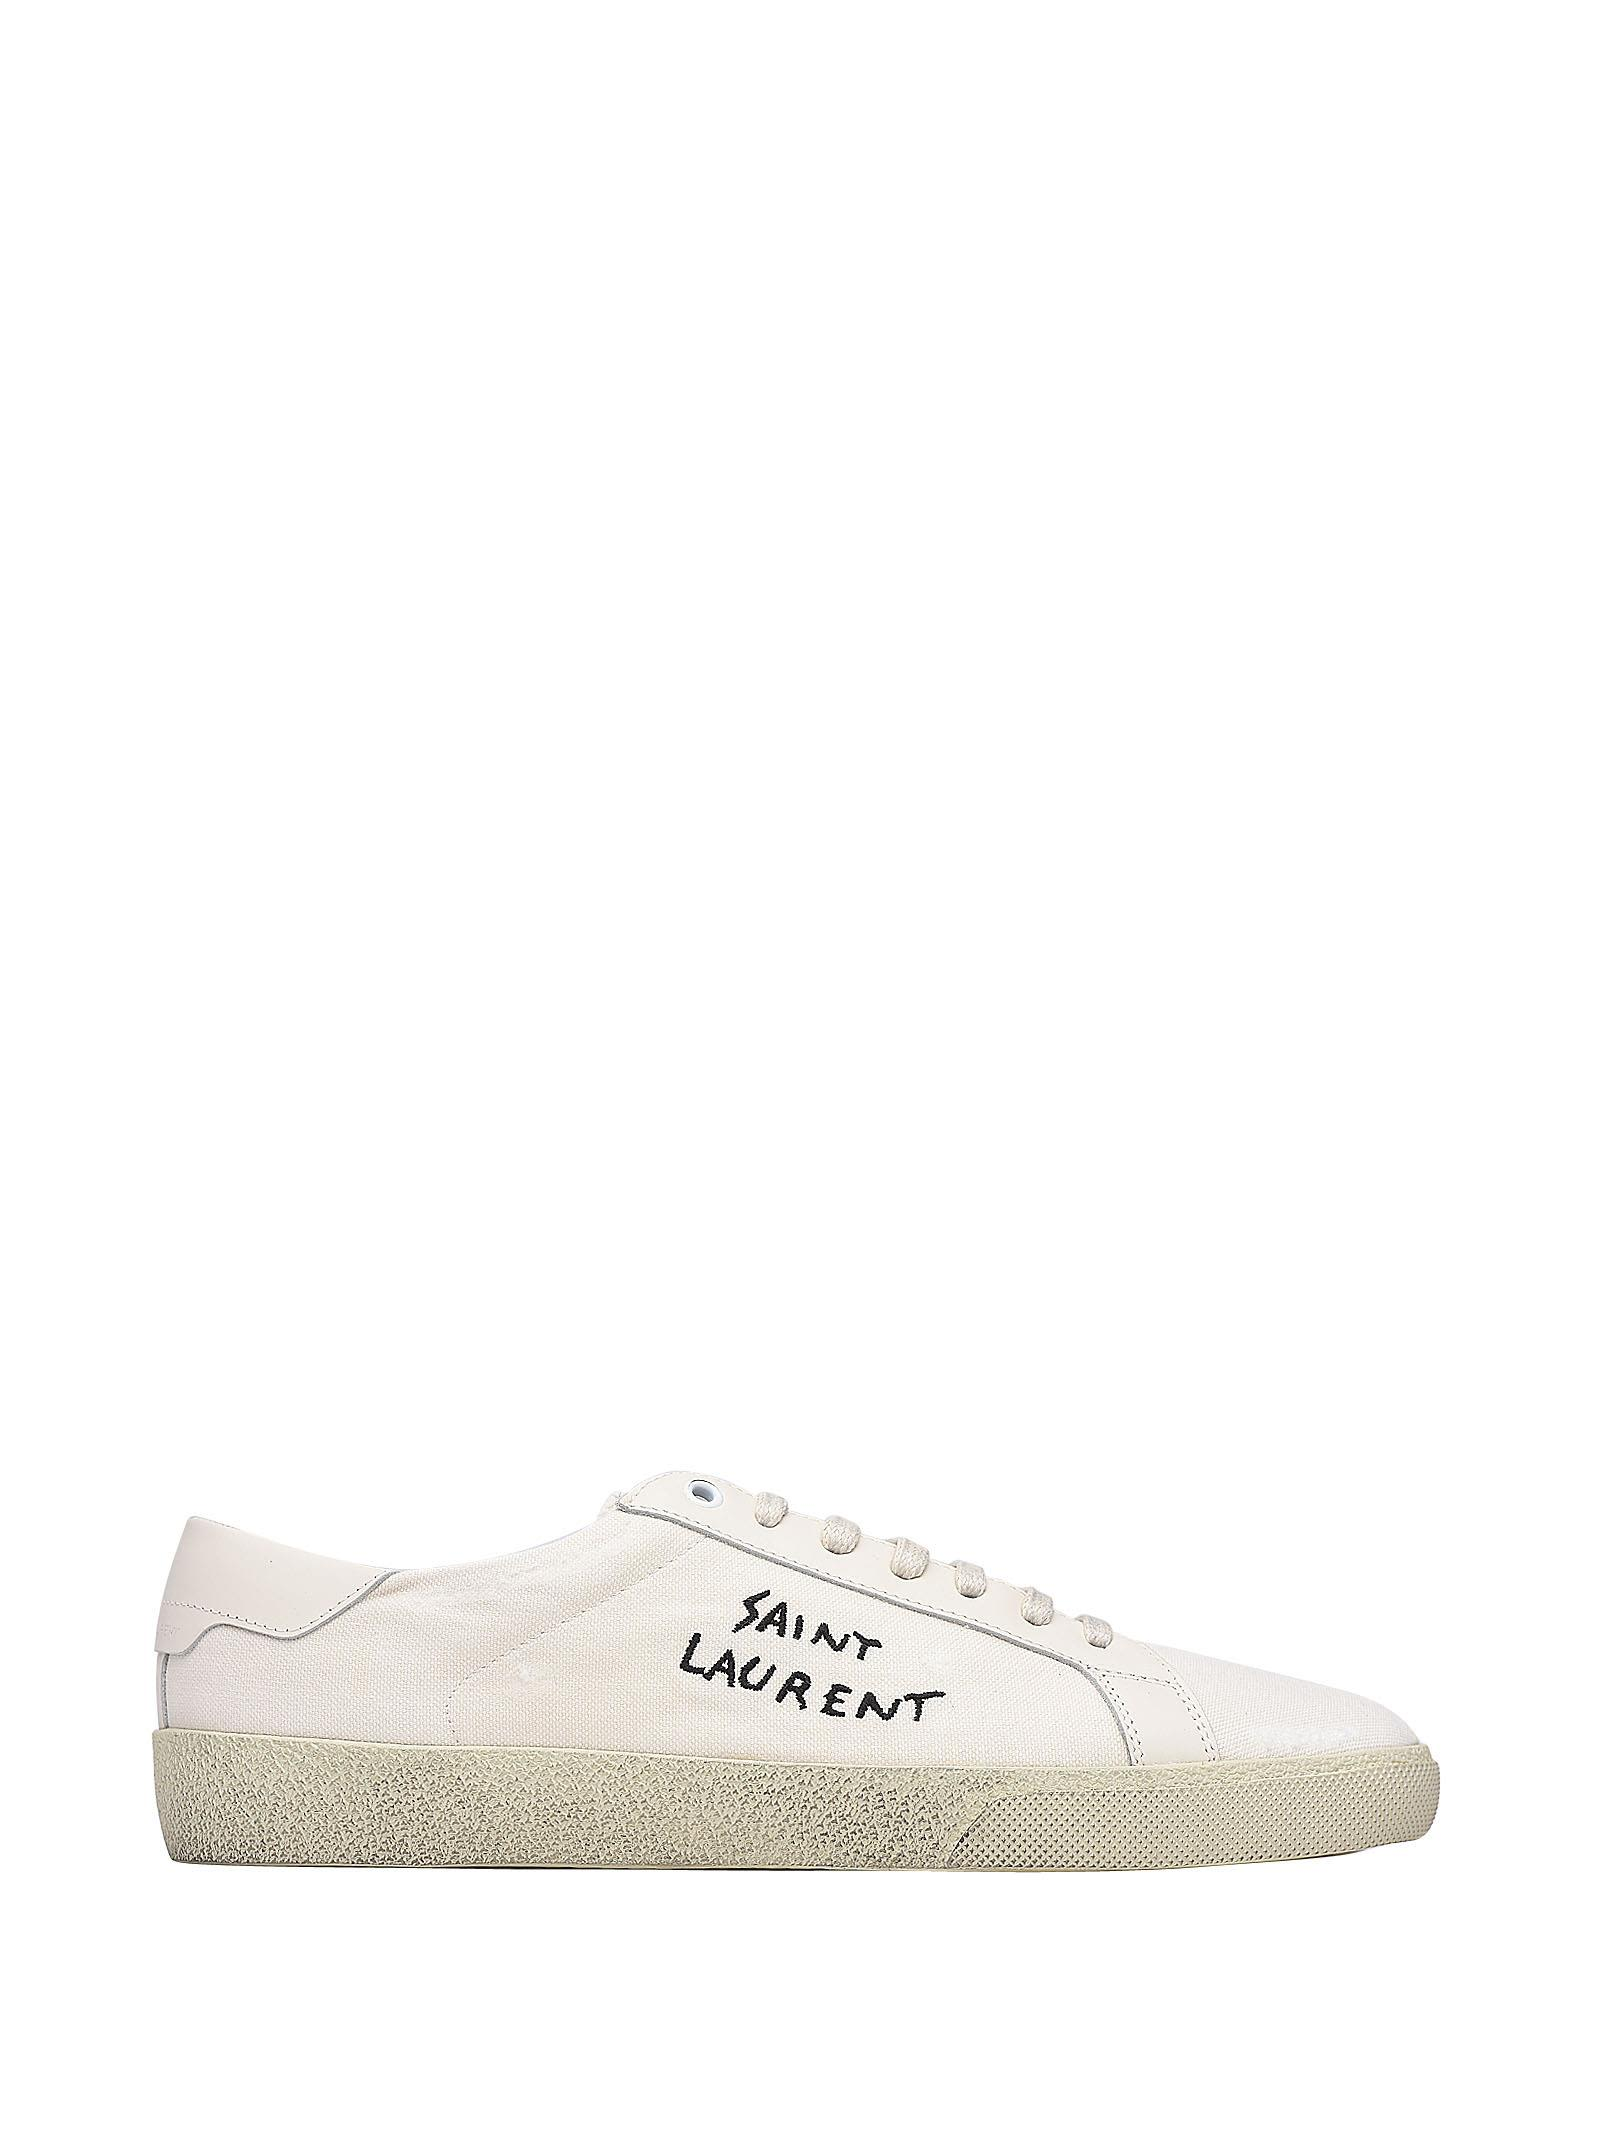 Saint Laurent Court Classic Sl-06 White Sneakers